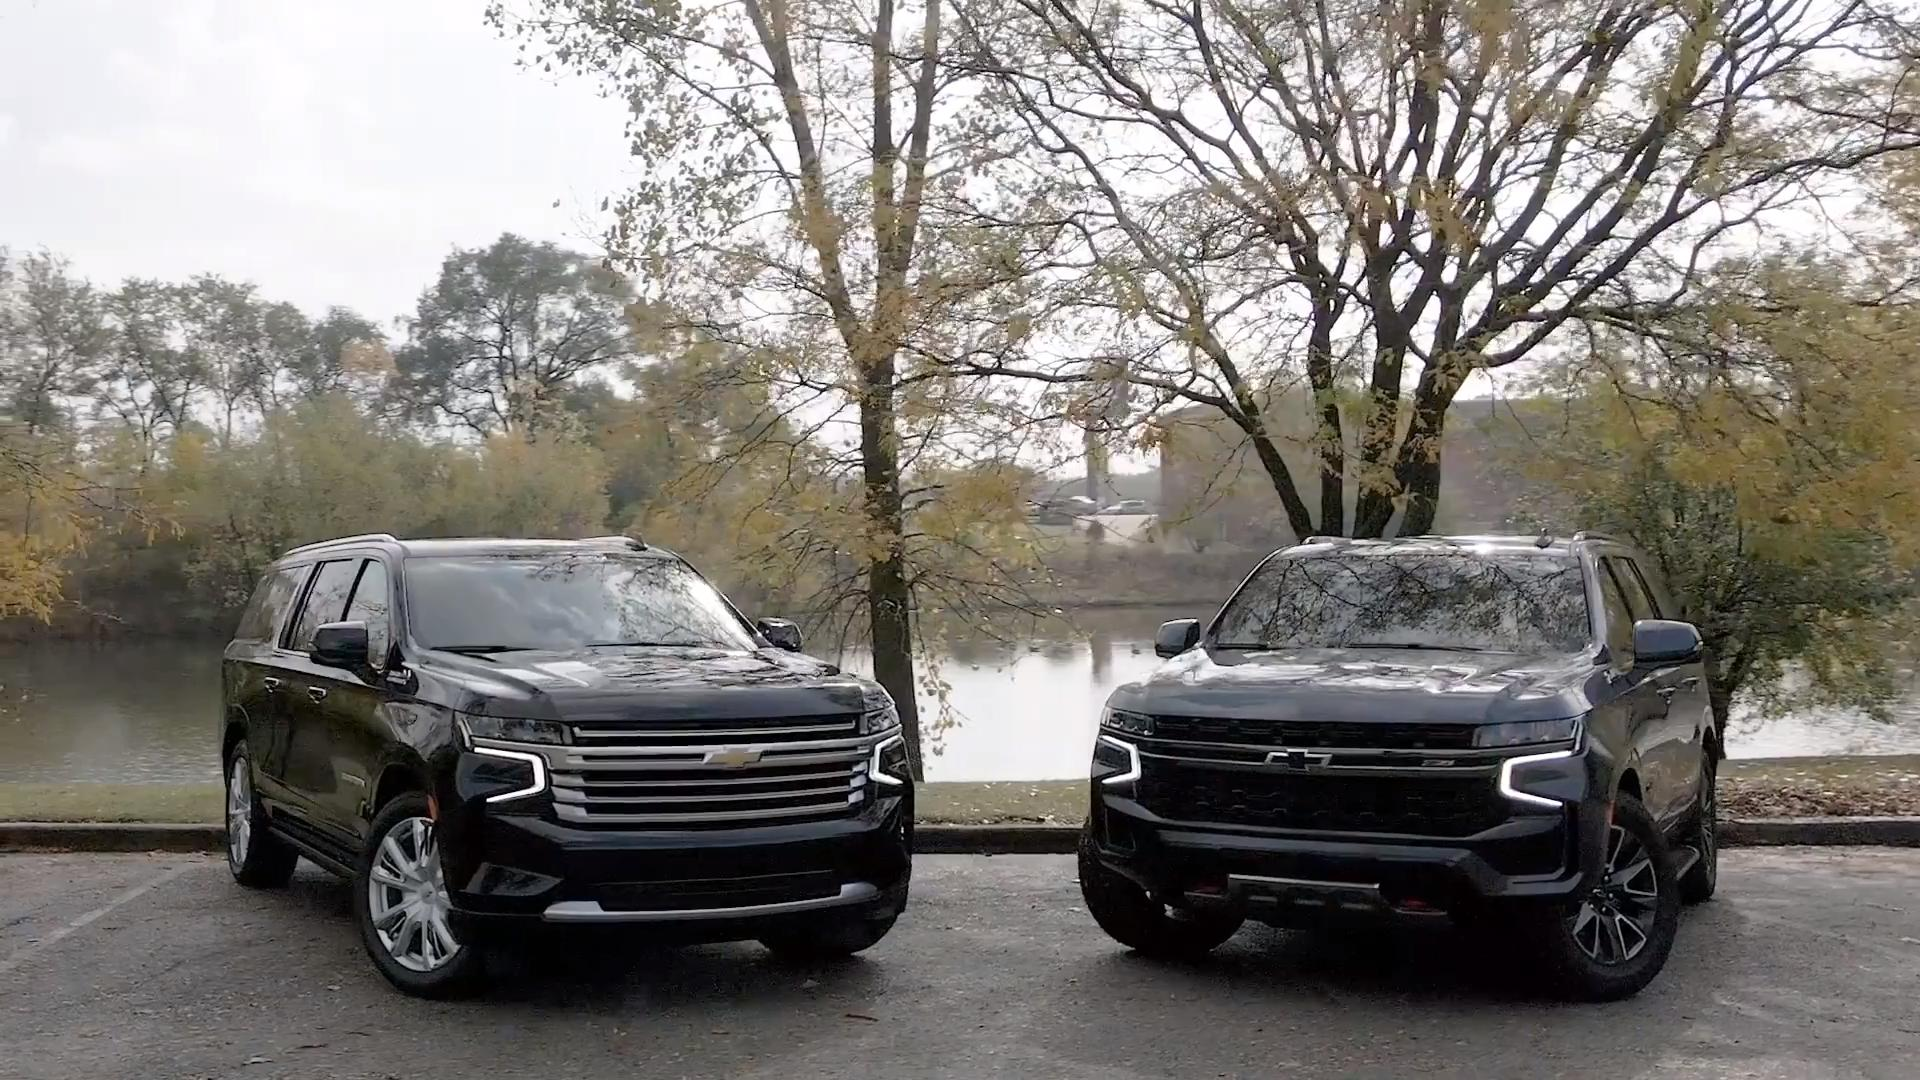 Video: 2021 Chevrolet Tahoe and Suburban Video Review — Cars.com